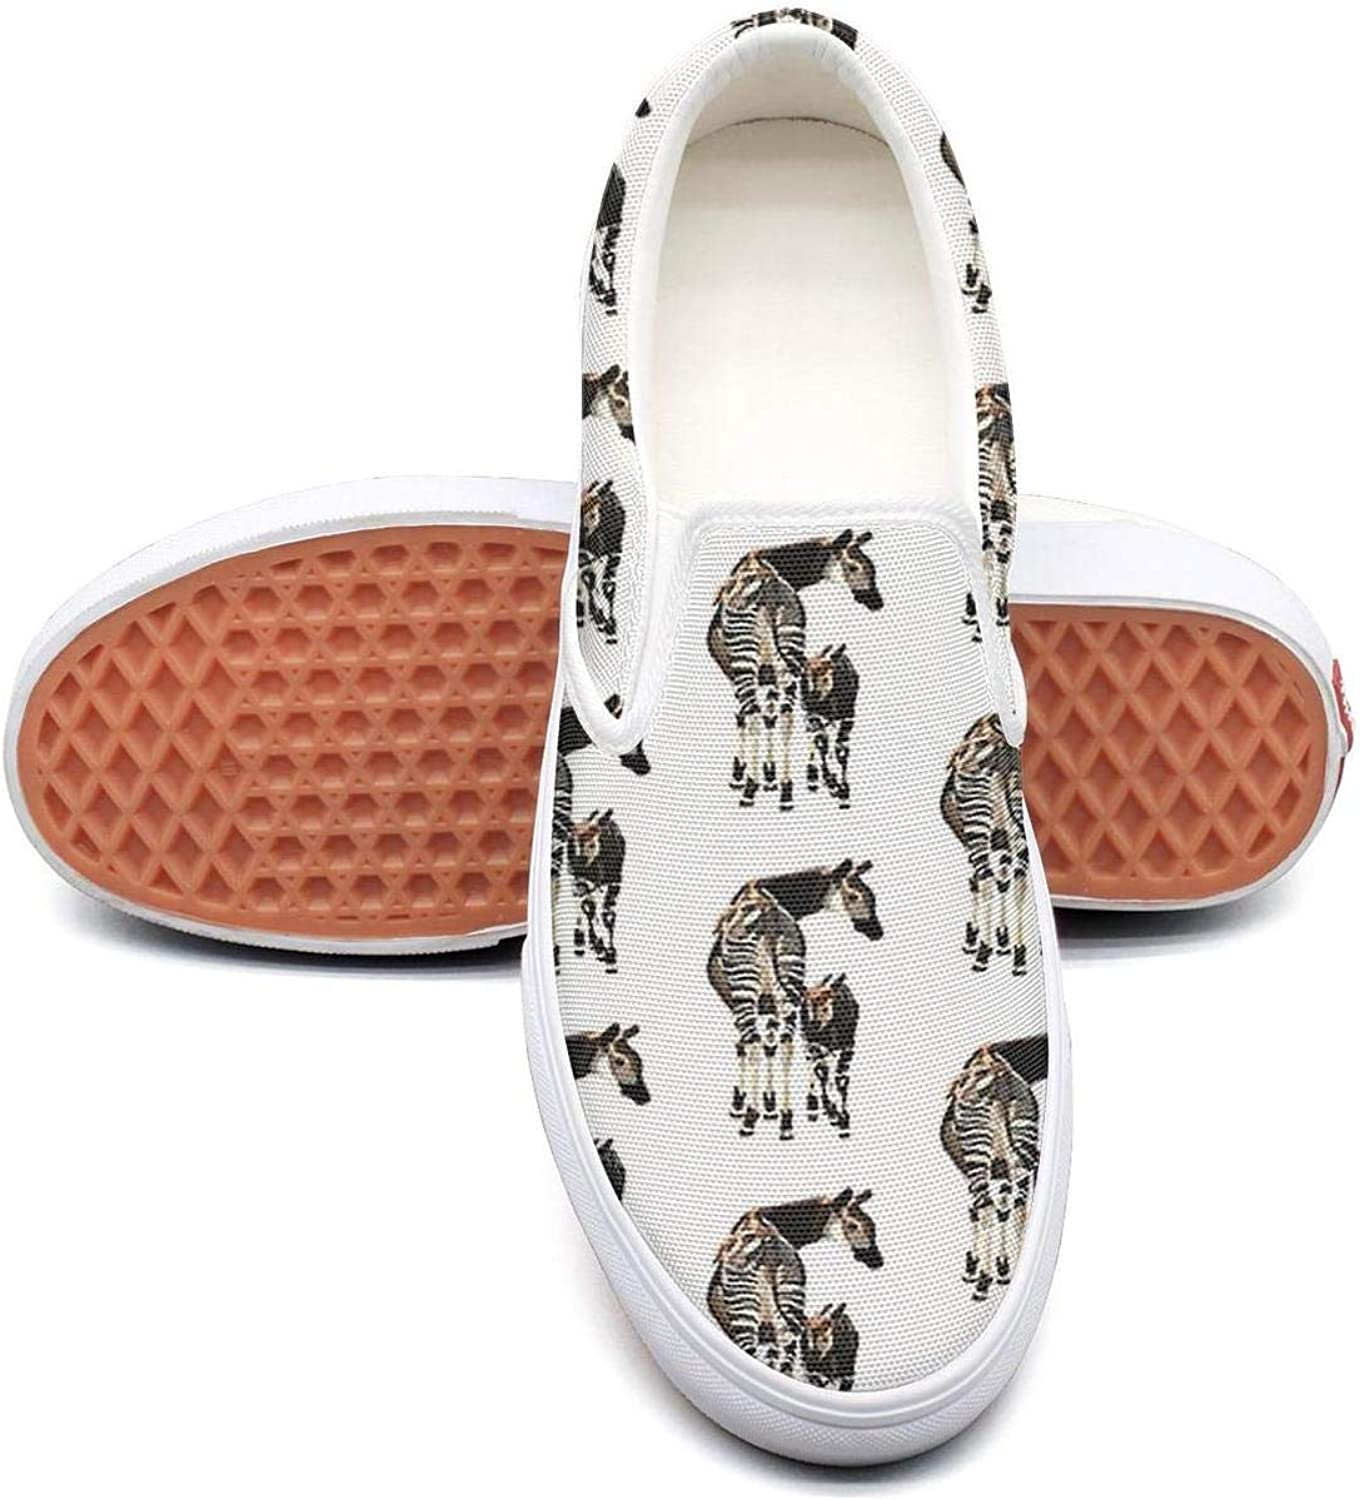 Refyds-es Okapi and Calf Womens Fashion Slip on Low Top Lightweight Canvas Tennis shoes